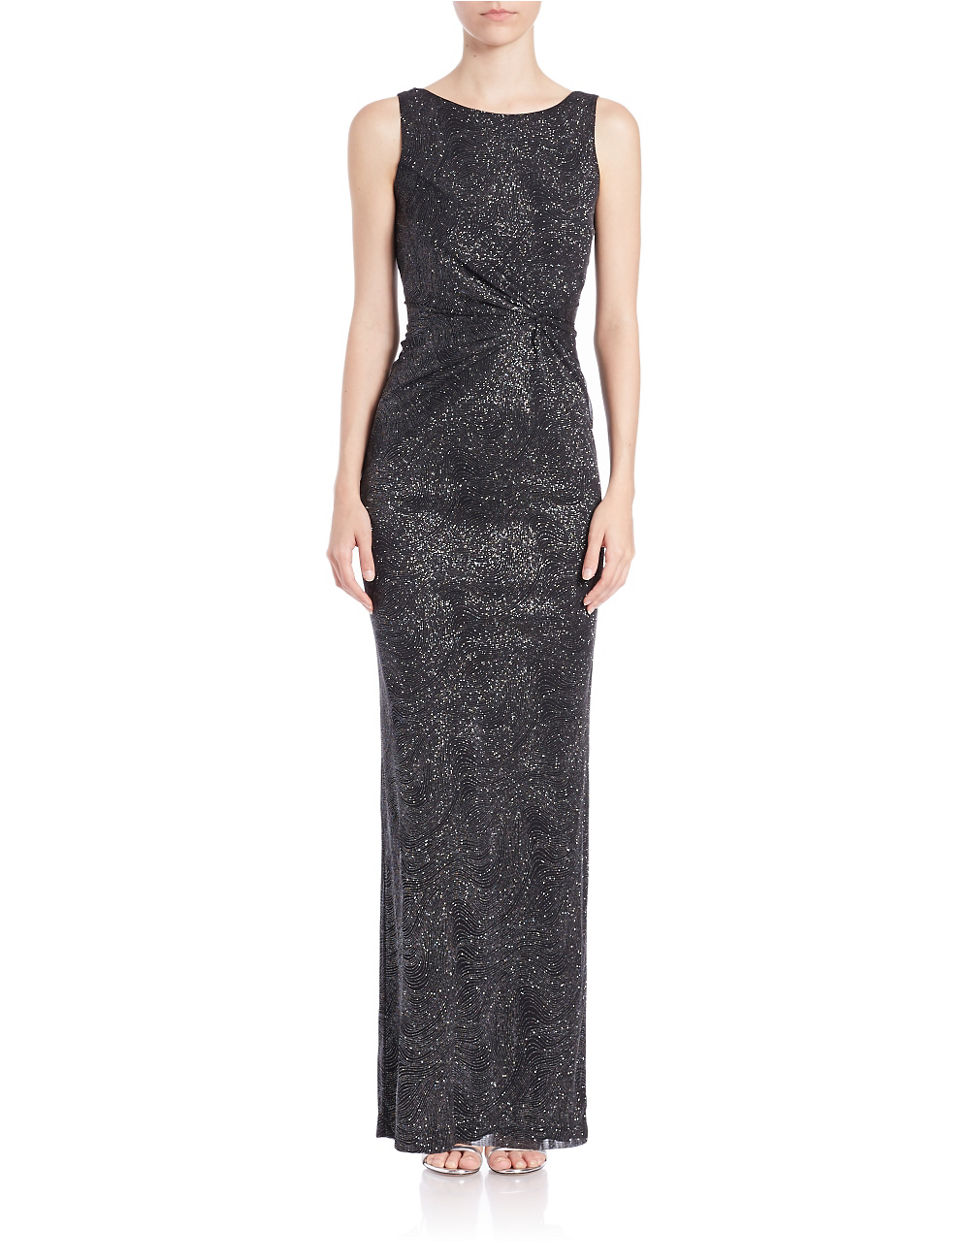 lord and taylor wedding guest dresses photo - 1